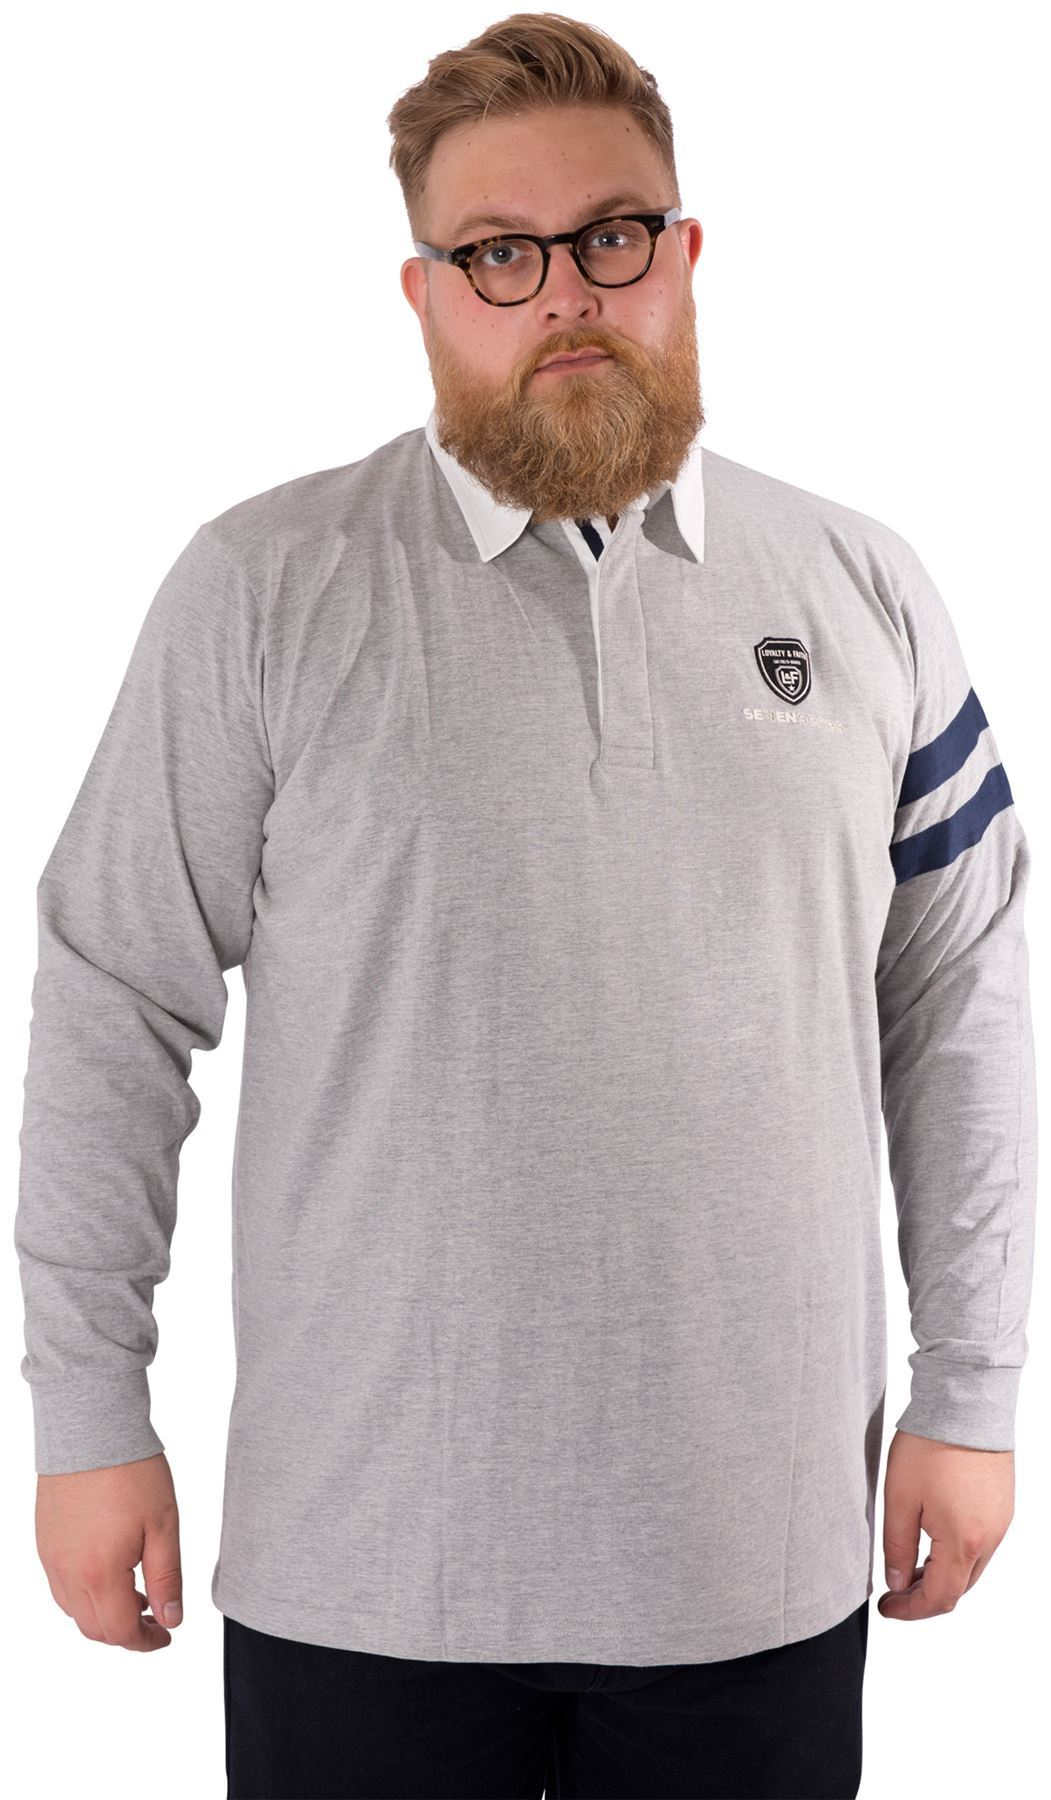 Mens Plus Size Long Sleeved Rugby Polo Shirt Contrasting